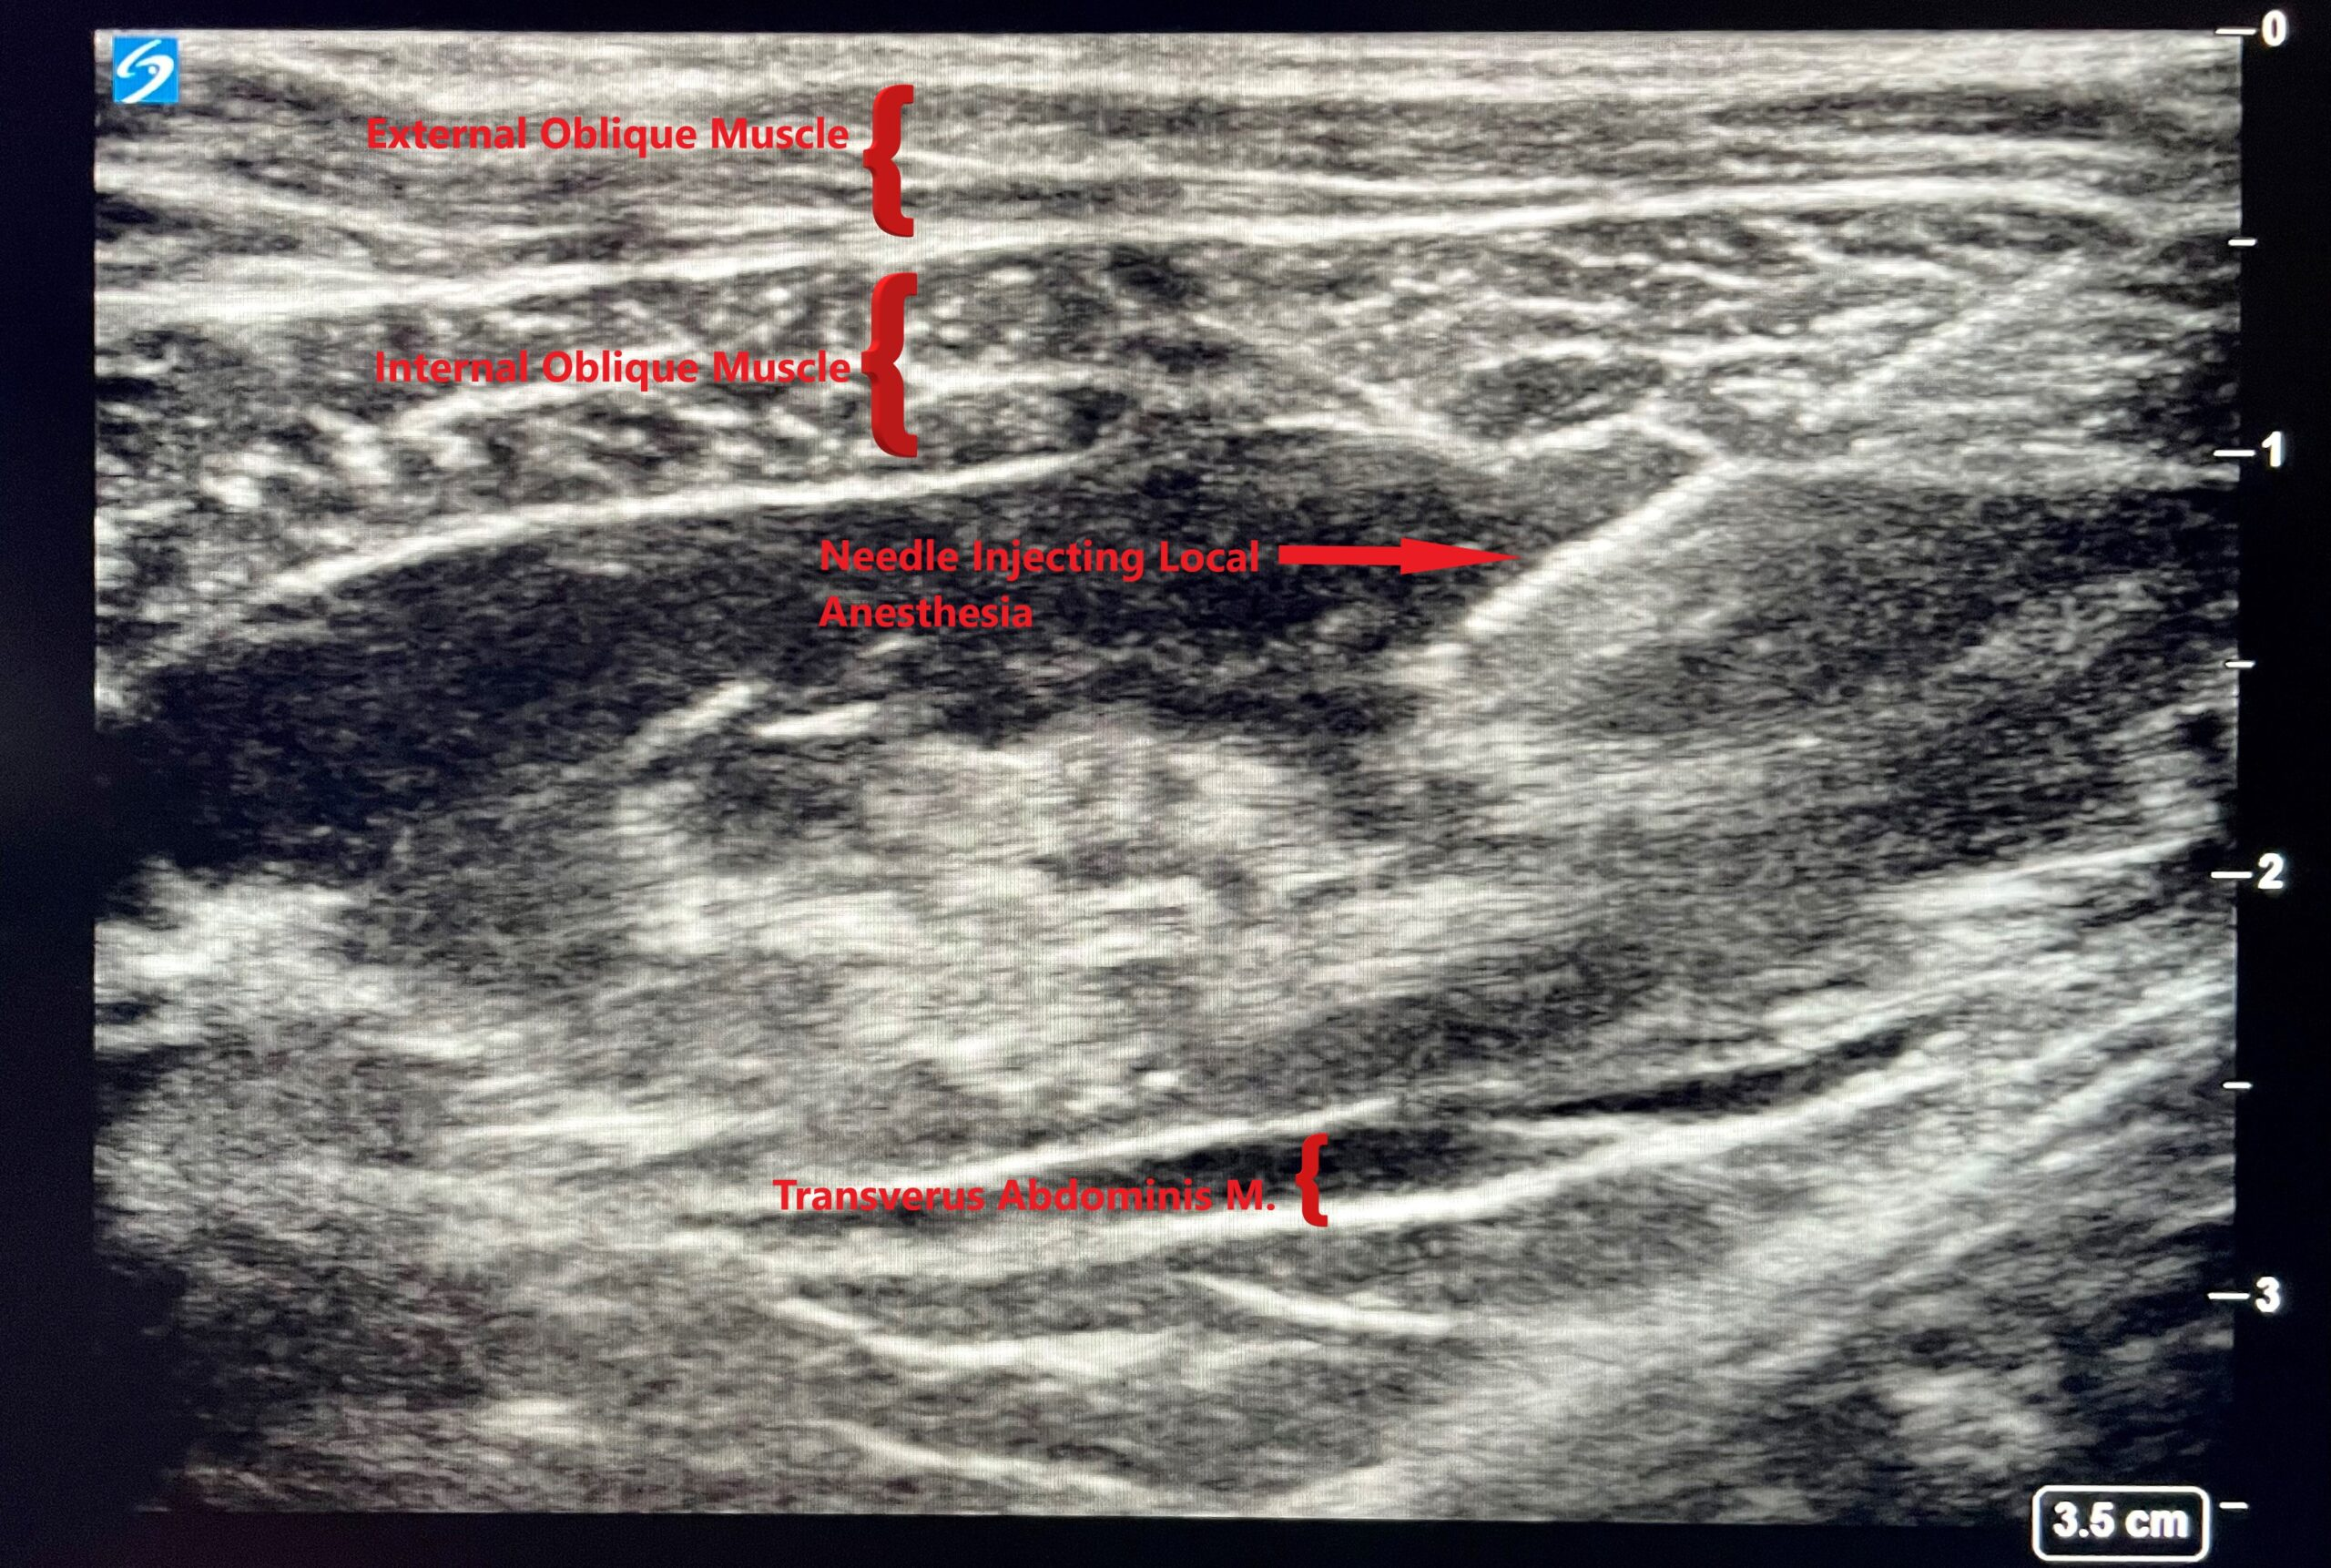 Dr. Light ERAS scan of muscle where anesthesia is injected